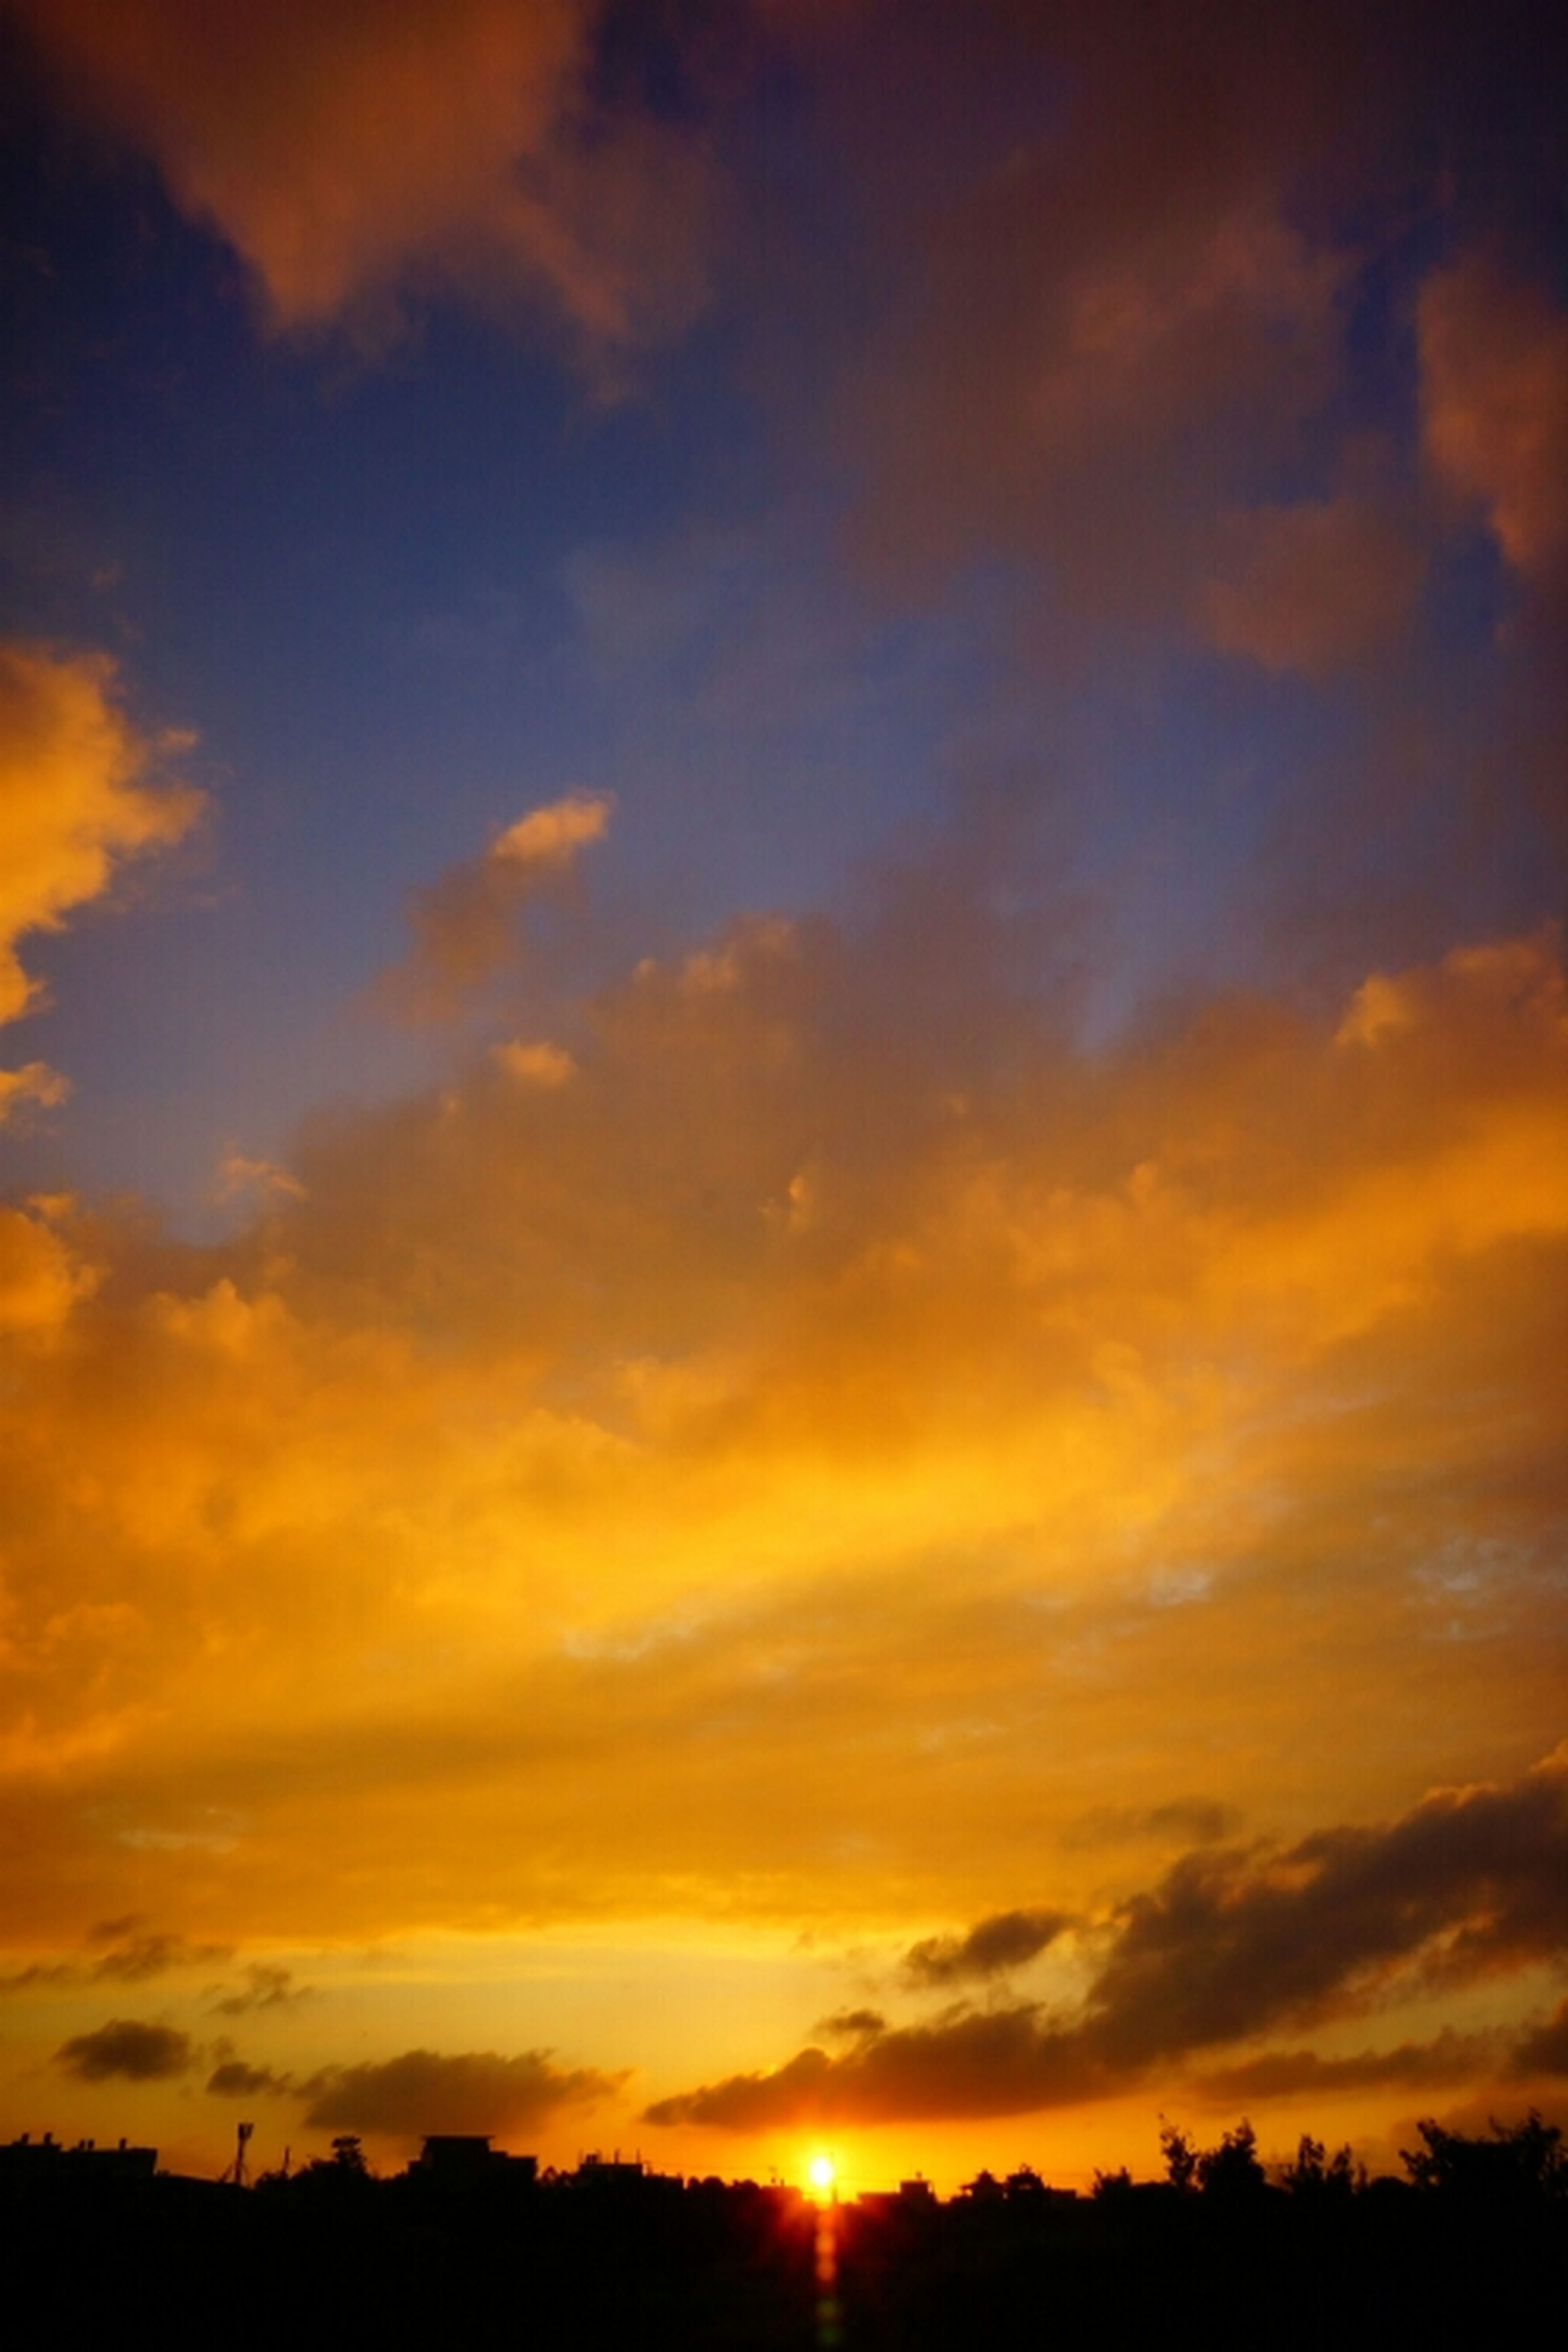 sunset, orange color, silhouette, scenics, sky, tranquil scene, beauty in nature, tranquility, sun, idyllic, nature, cloud - sky, dramatic sky, cloud, sunlight, landscape, majestic, outdoors, no people, moody sky